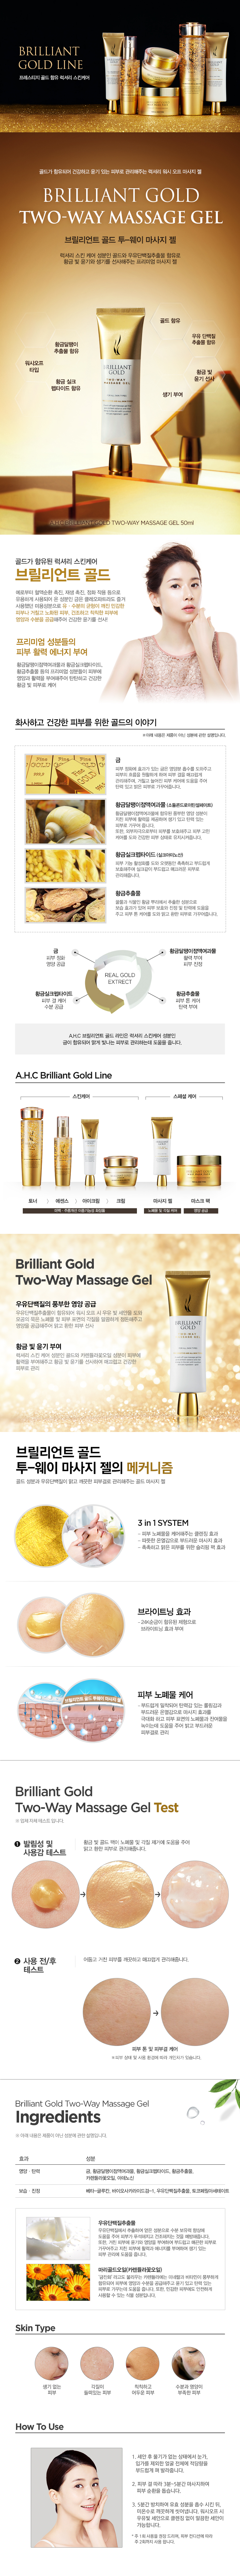 AHC Brilliant Gold Two Way Massage Gel 50ml malaysia singapore indonesia